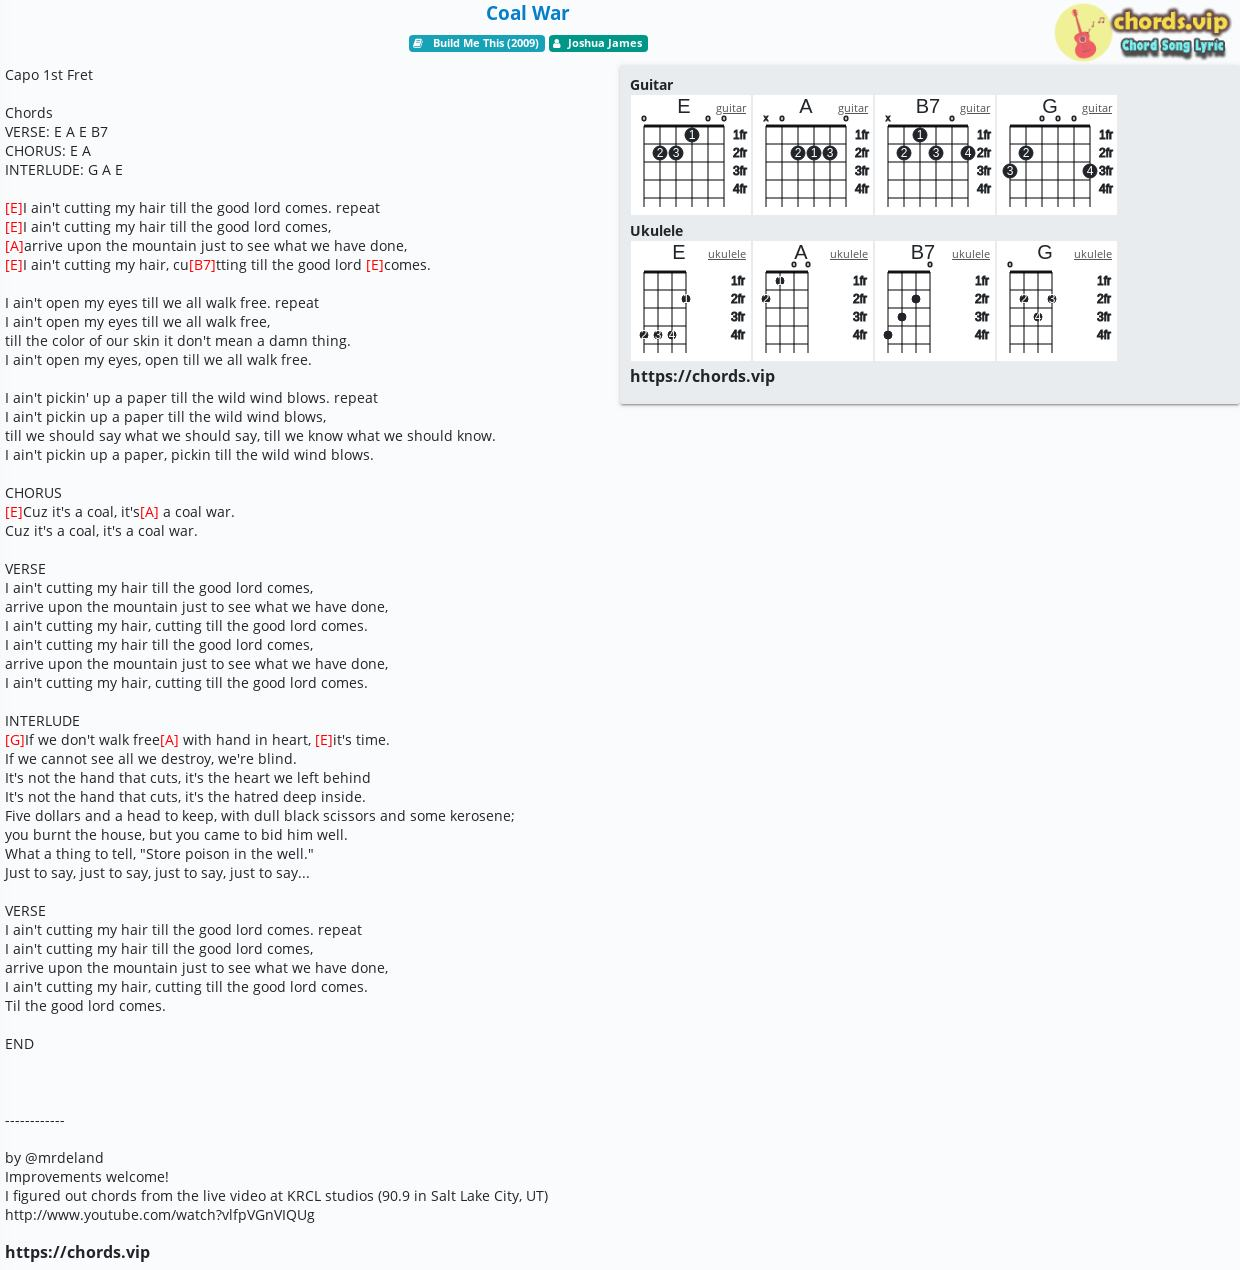 Chord: Coal War - Joshua James - tab, song lyric, sheet, guitar